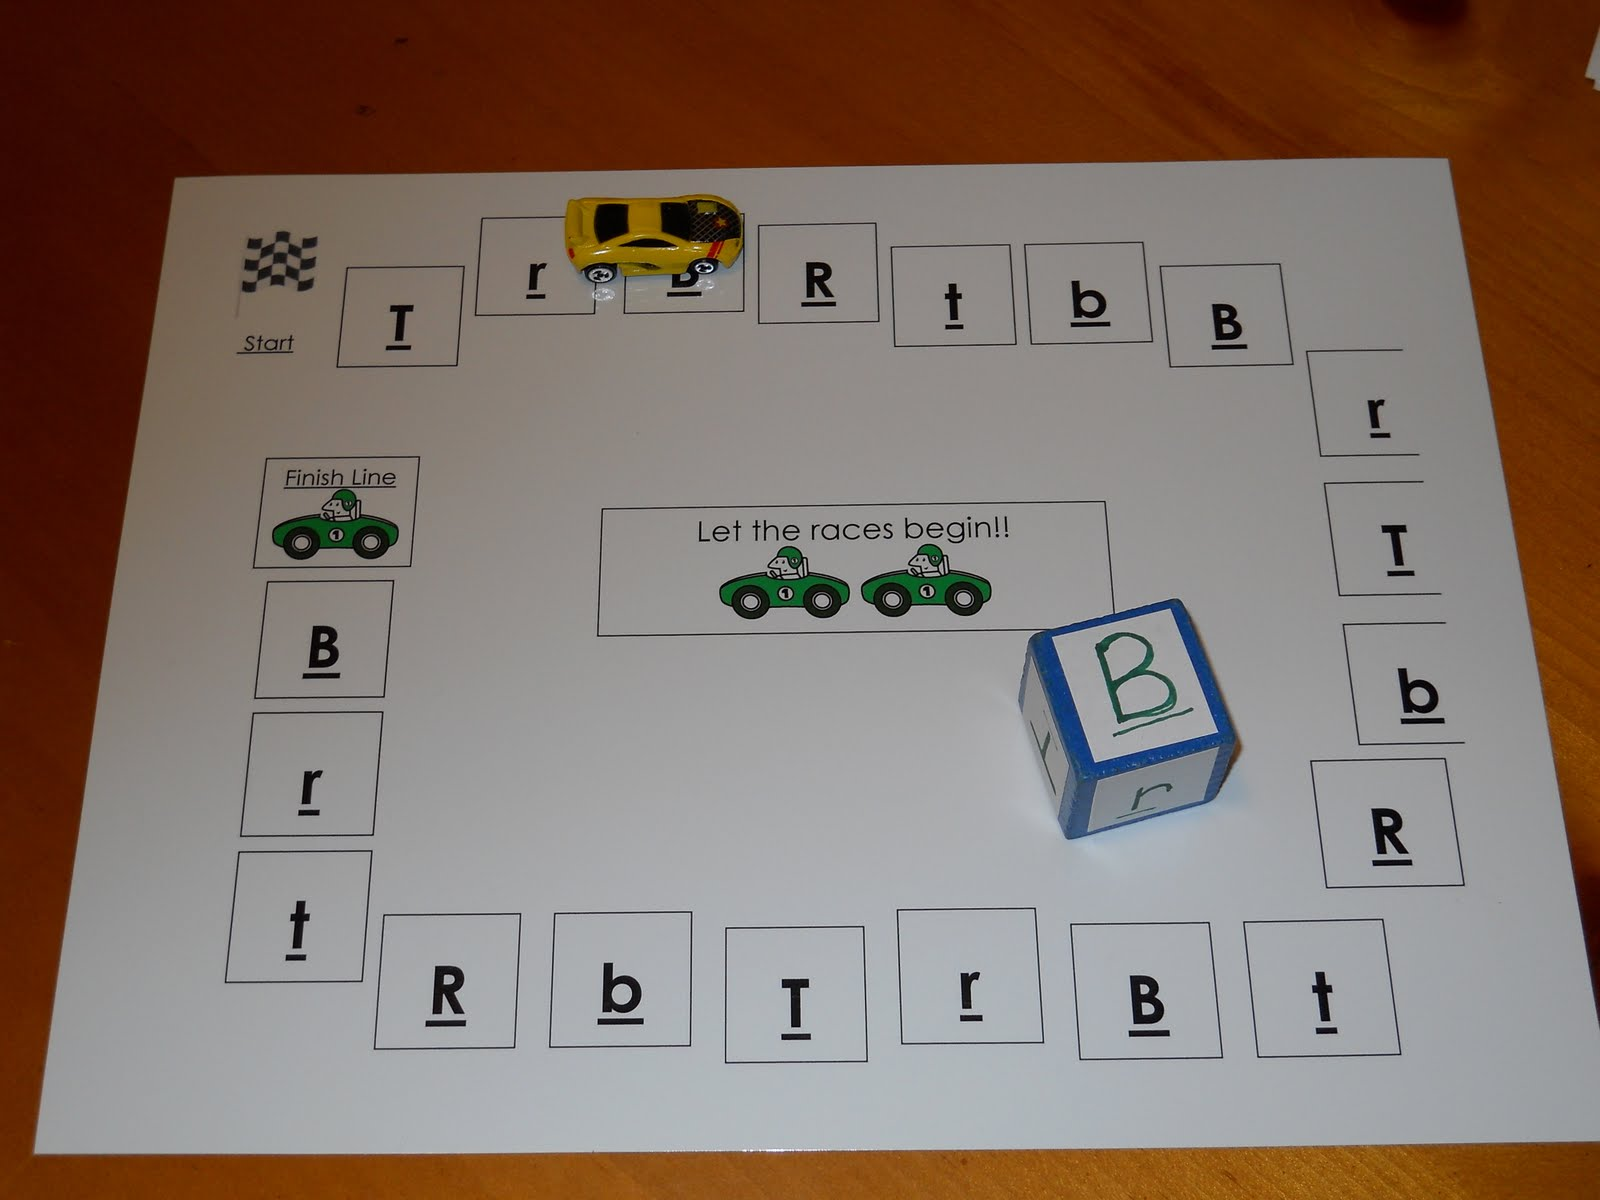 ... letter recognition and letter sound activities then it is time to